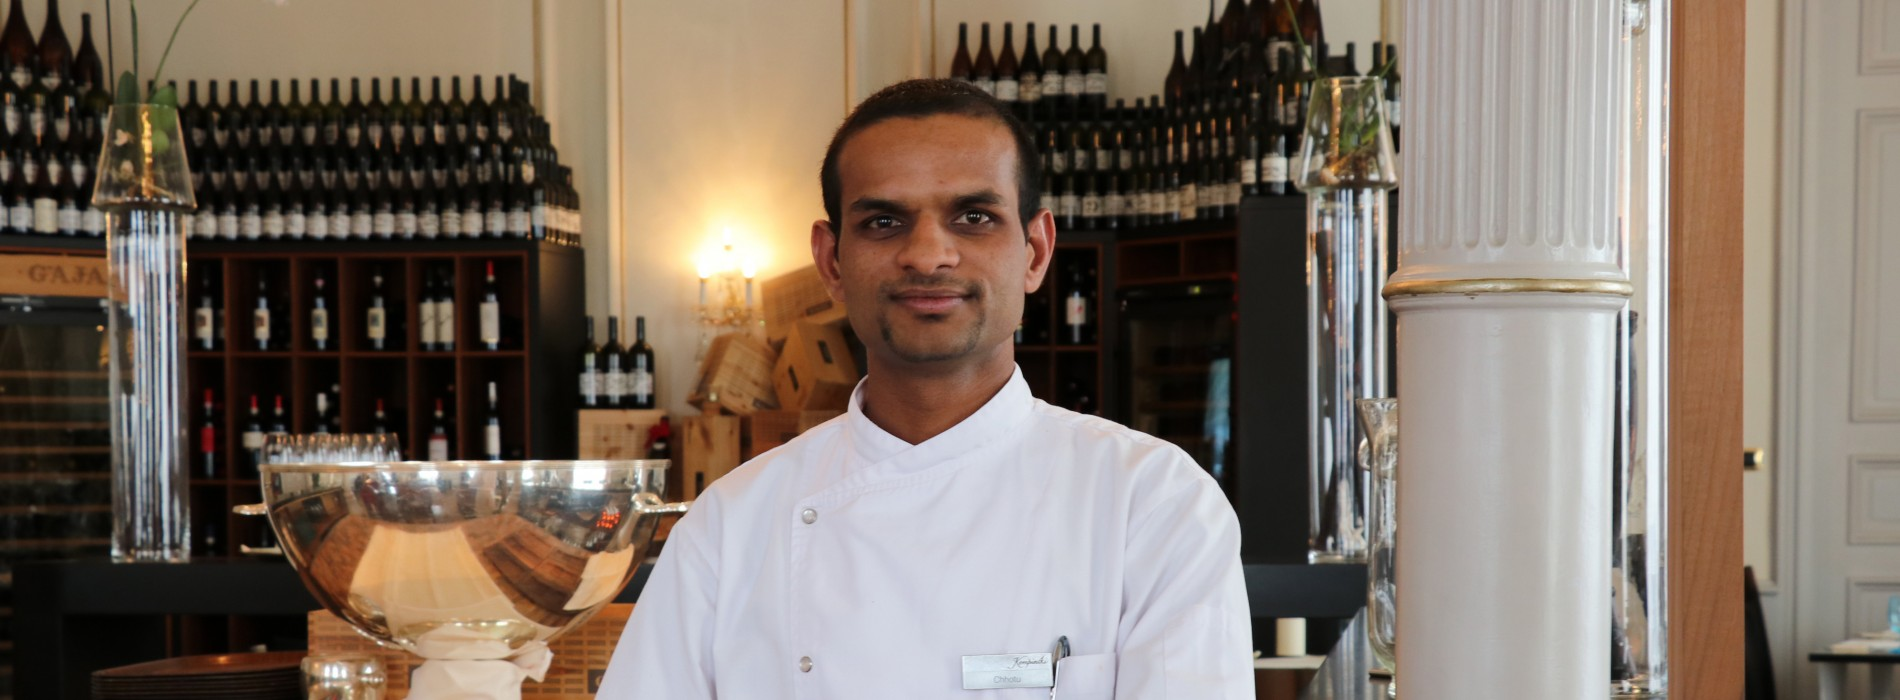 Kempinski Grand Hotel appoints Indian specialty Chef Chhotu Kahatik